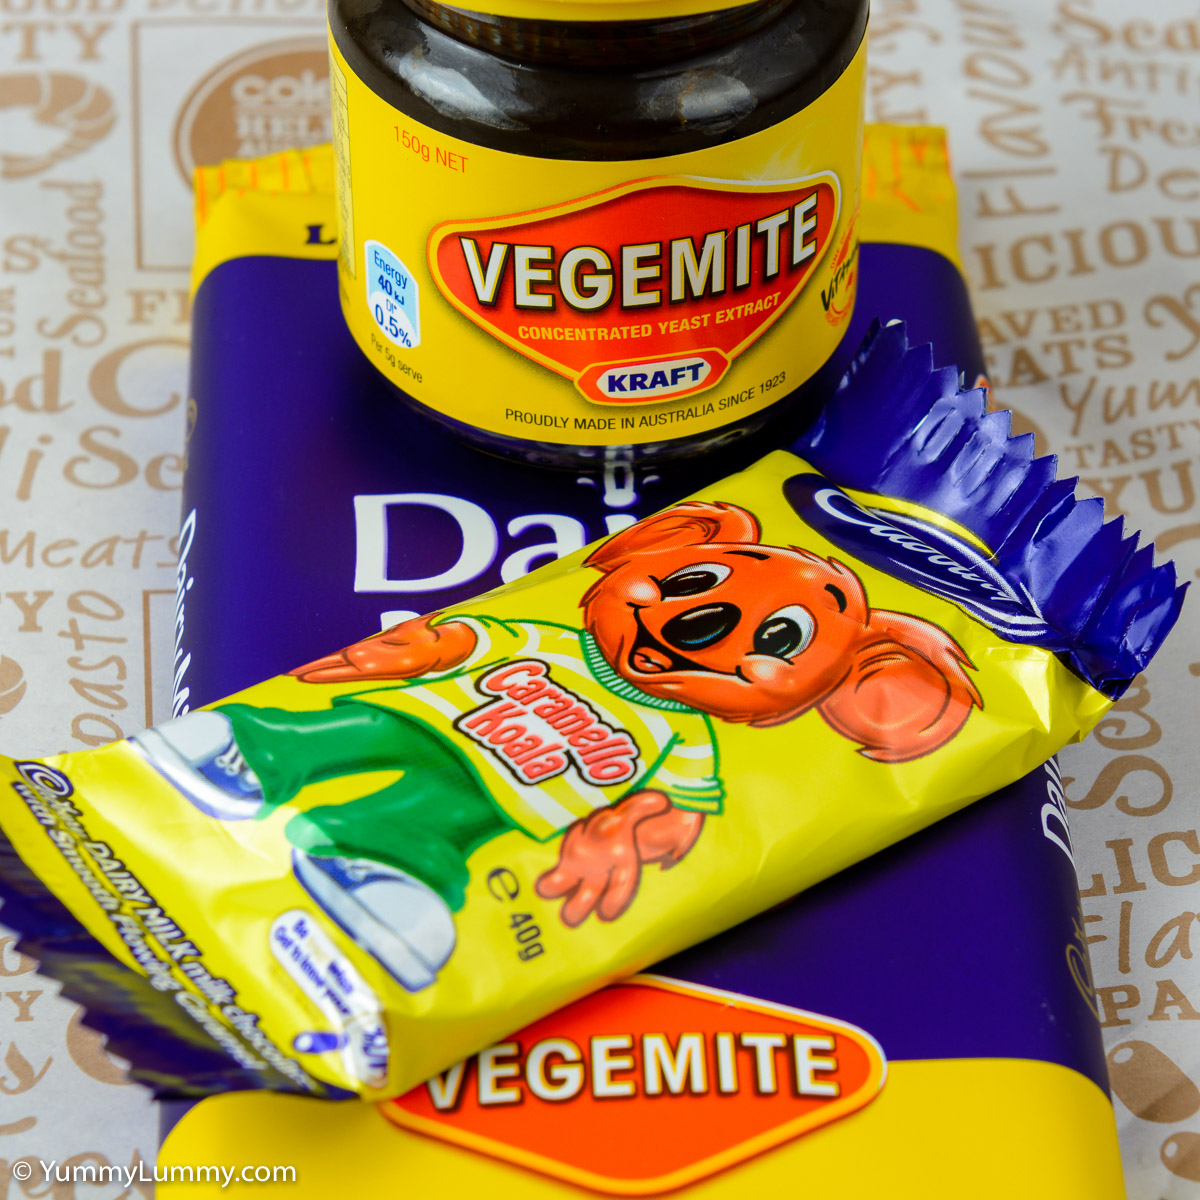 Wanting Cadbury to make Vegemite Caramello Koala concept